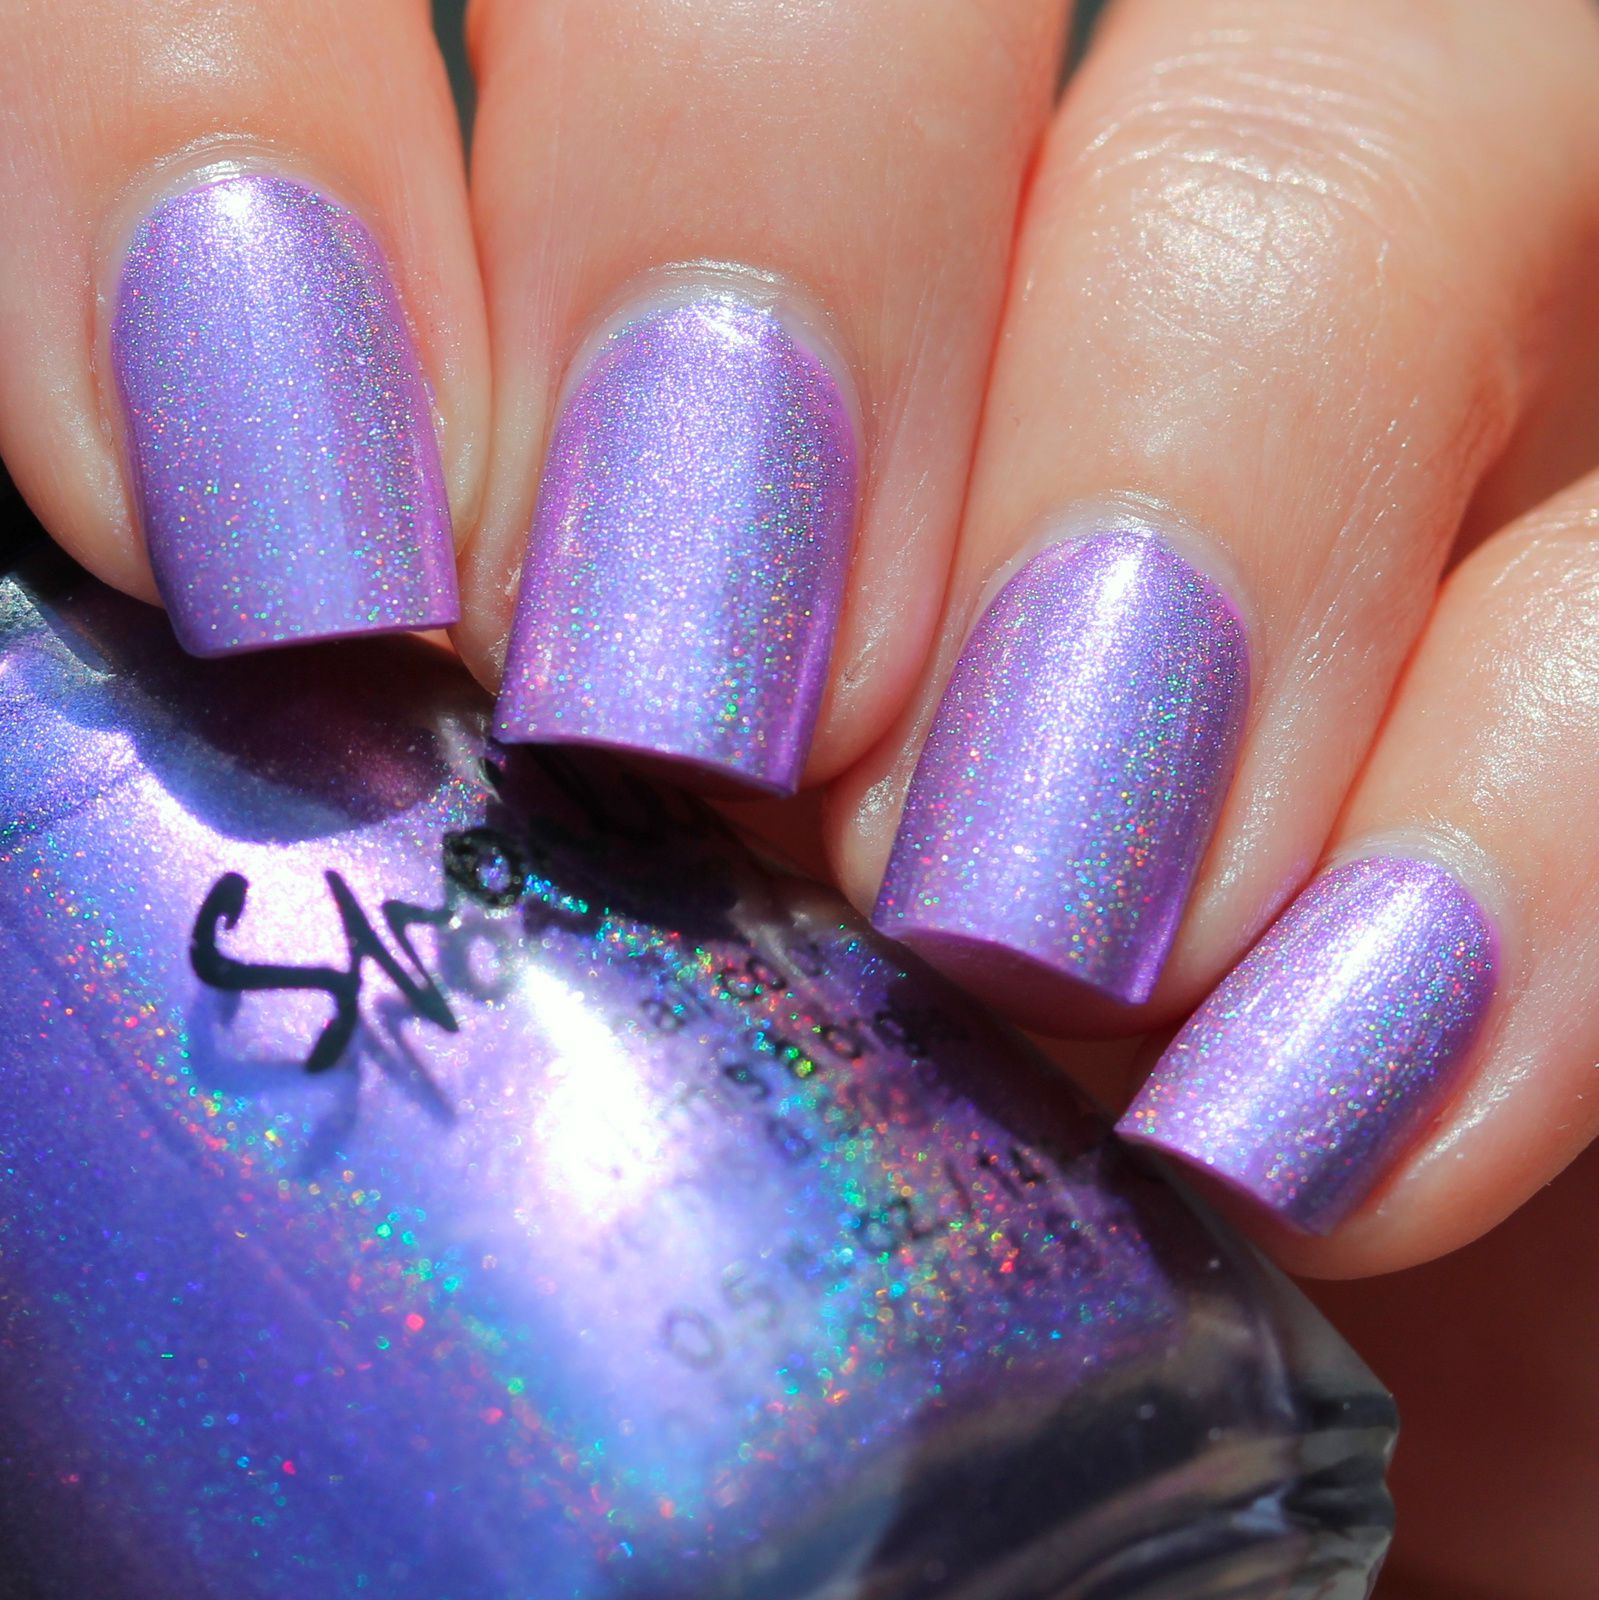 Duri Rejuvacote / Sation Love at First Lavender / Spoiled Franken Polish Checkin' Into Rehab / Sally Hansen Miracle Gel Top Coat